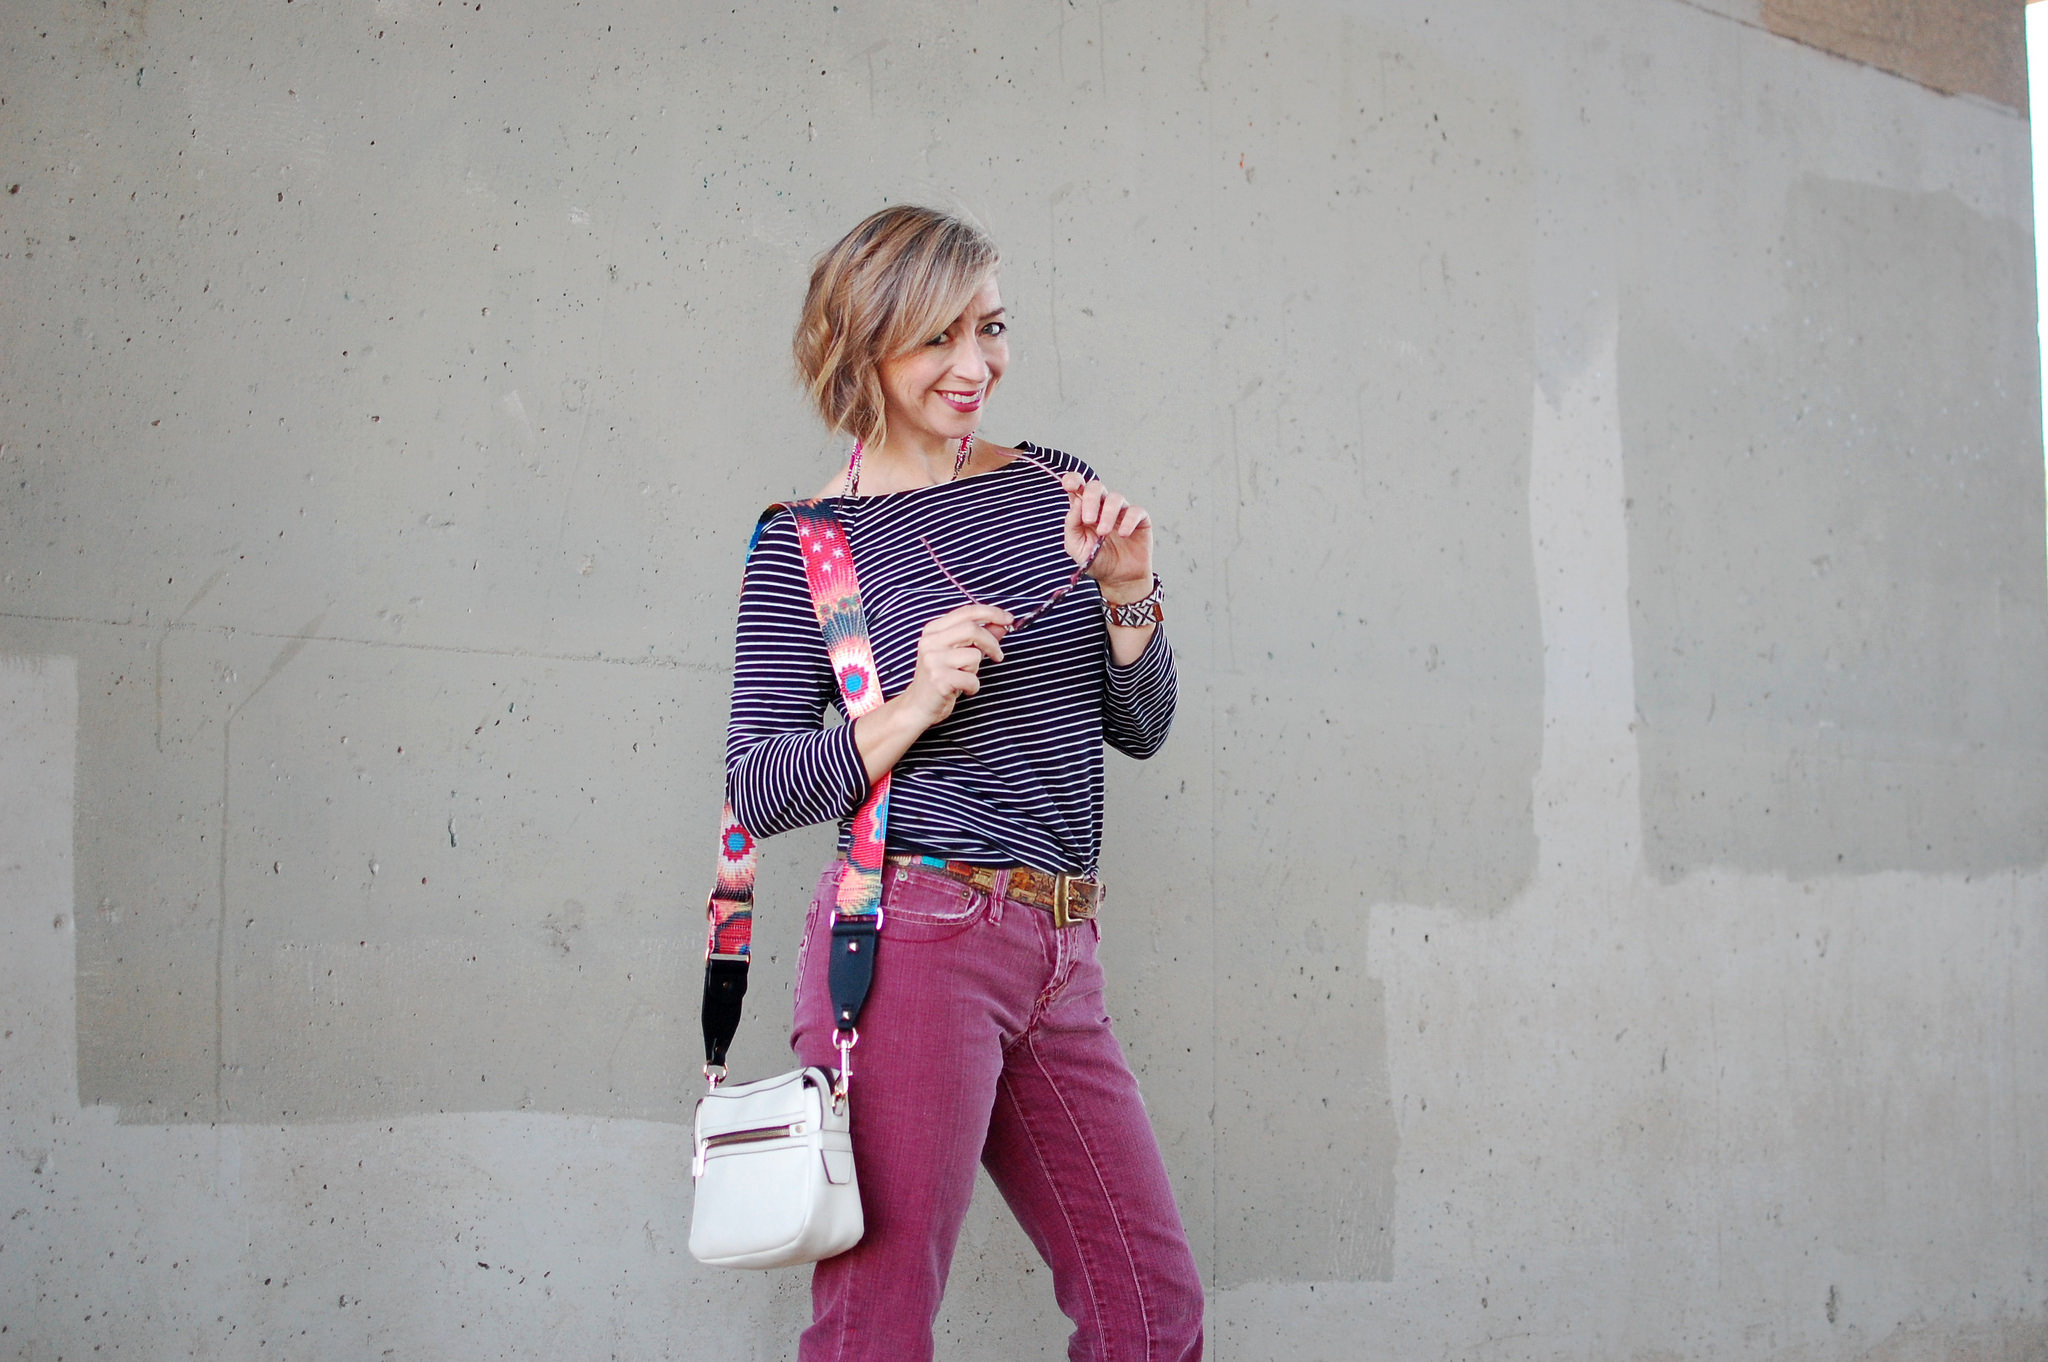 pink jeans black and white striped shirt daily outfit blog ootd whatiwore2day